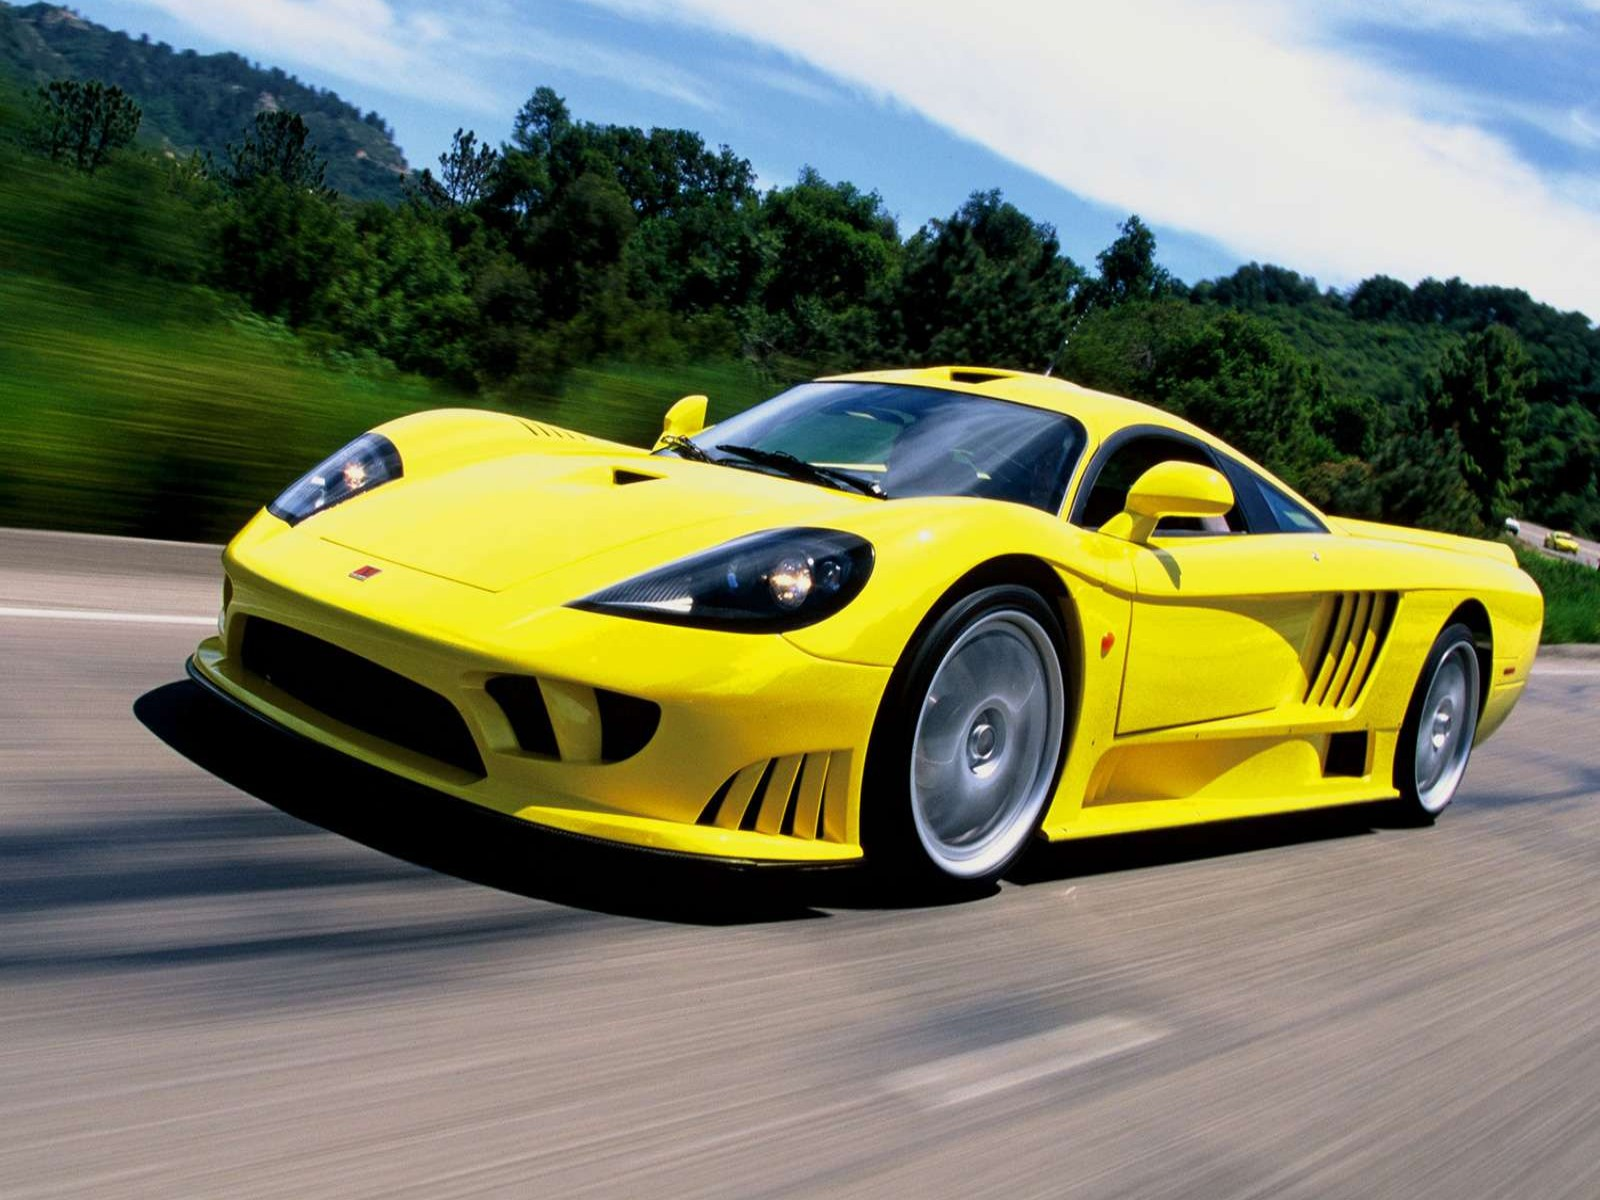 Car And Car Zone: Saleen S7 2002 new cars, car reviews, car pictures and auto industry trends